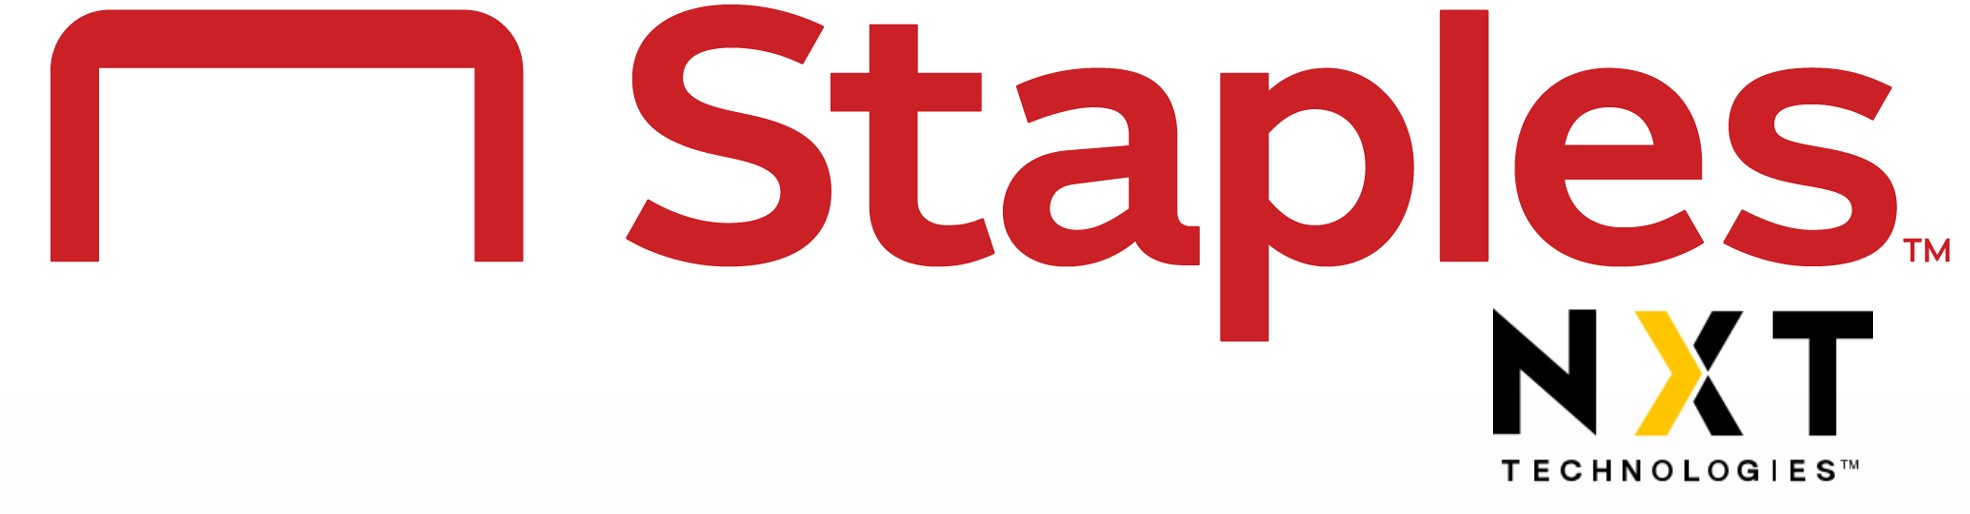 Staples Technology Solutions (Computer Supplies & IT Solutions) - NXT Technologies™